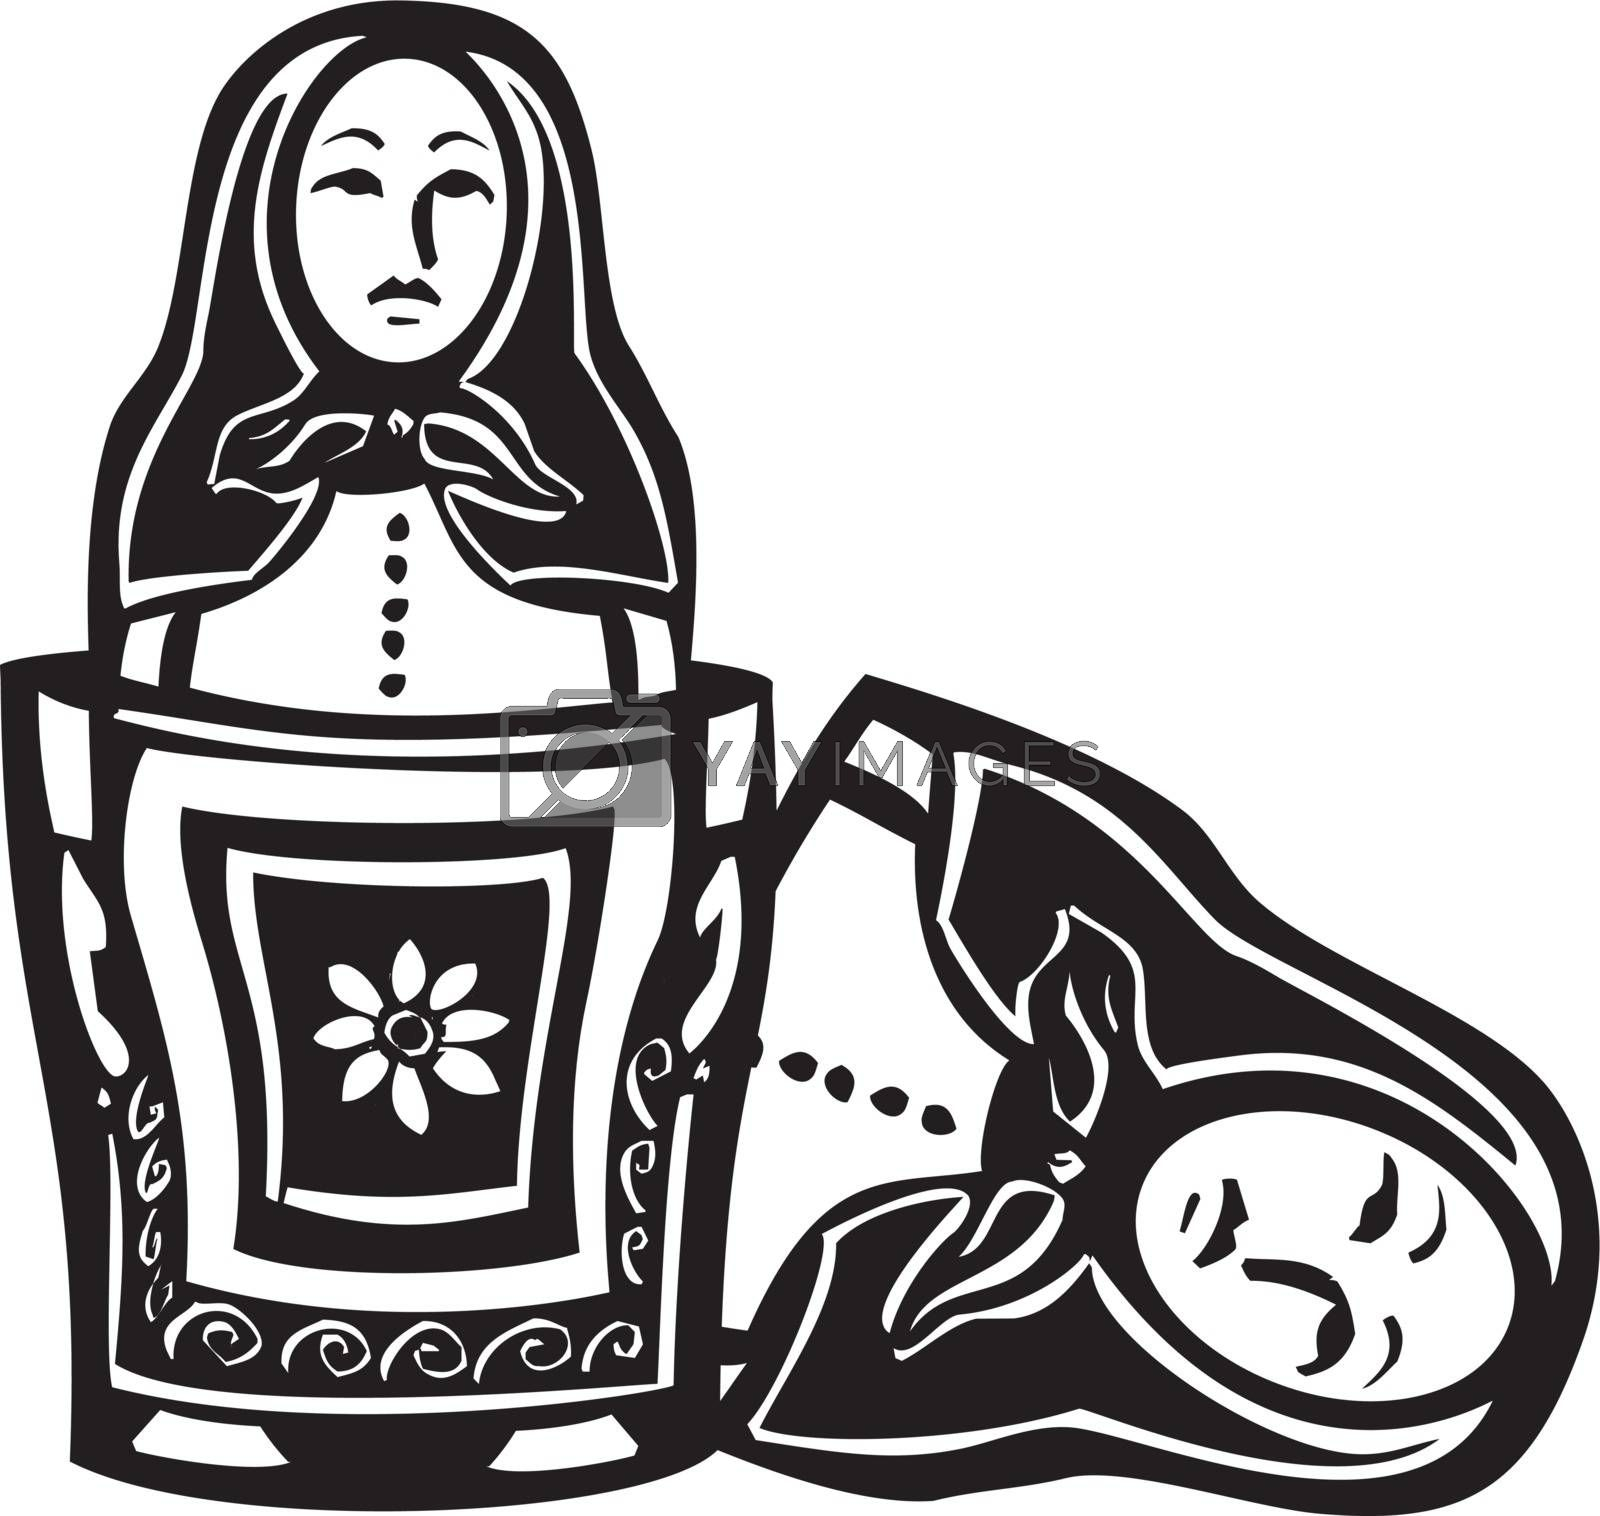 woodcut style image of a Russian nested doll with another doll inside.